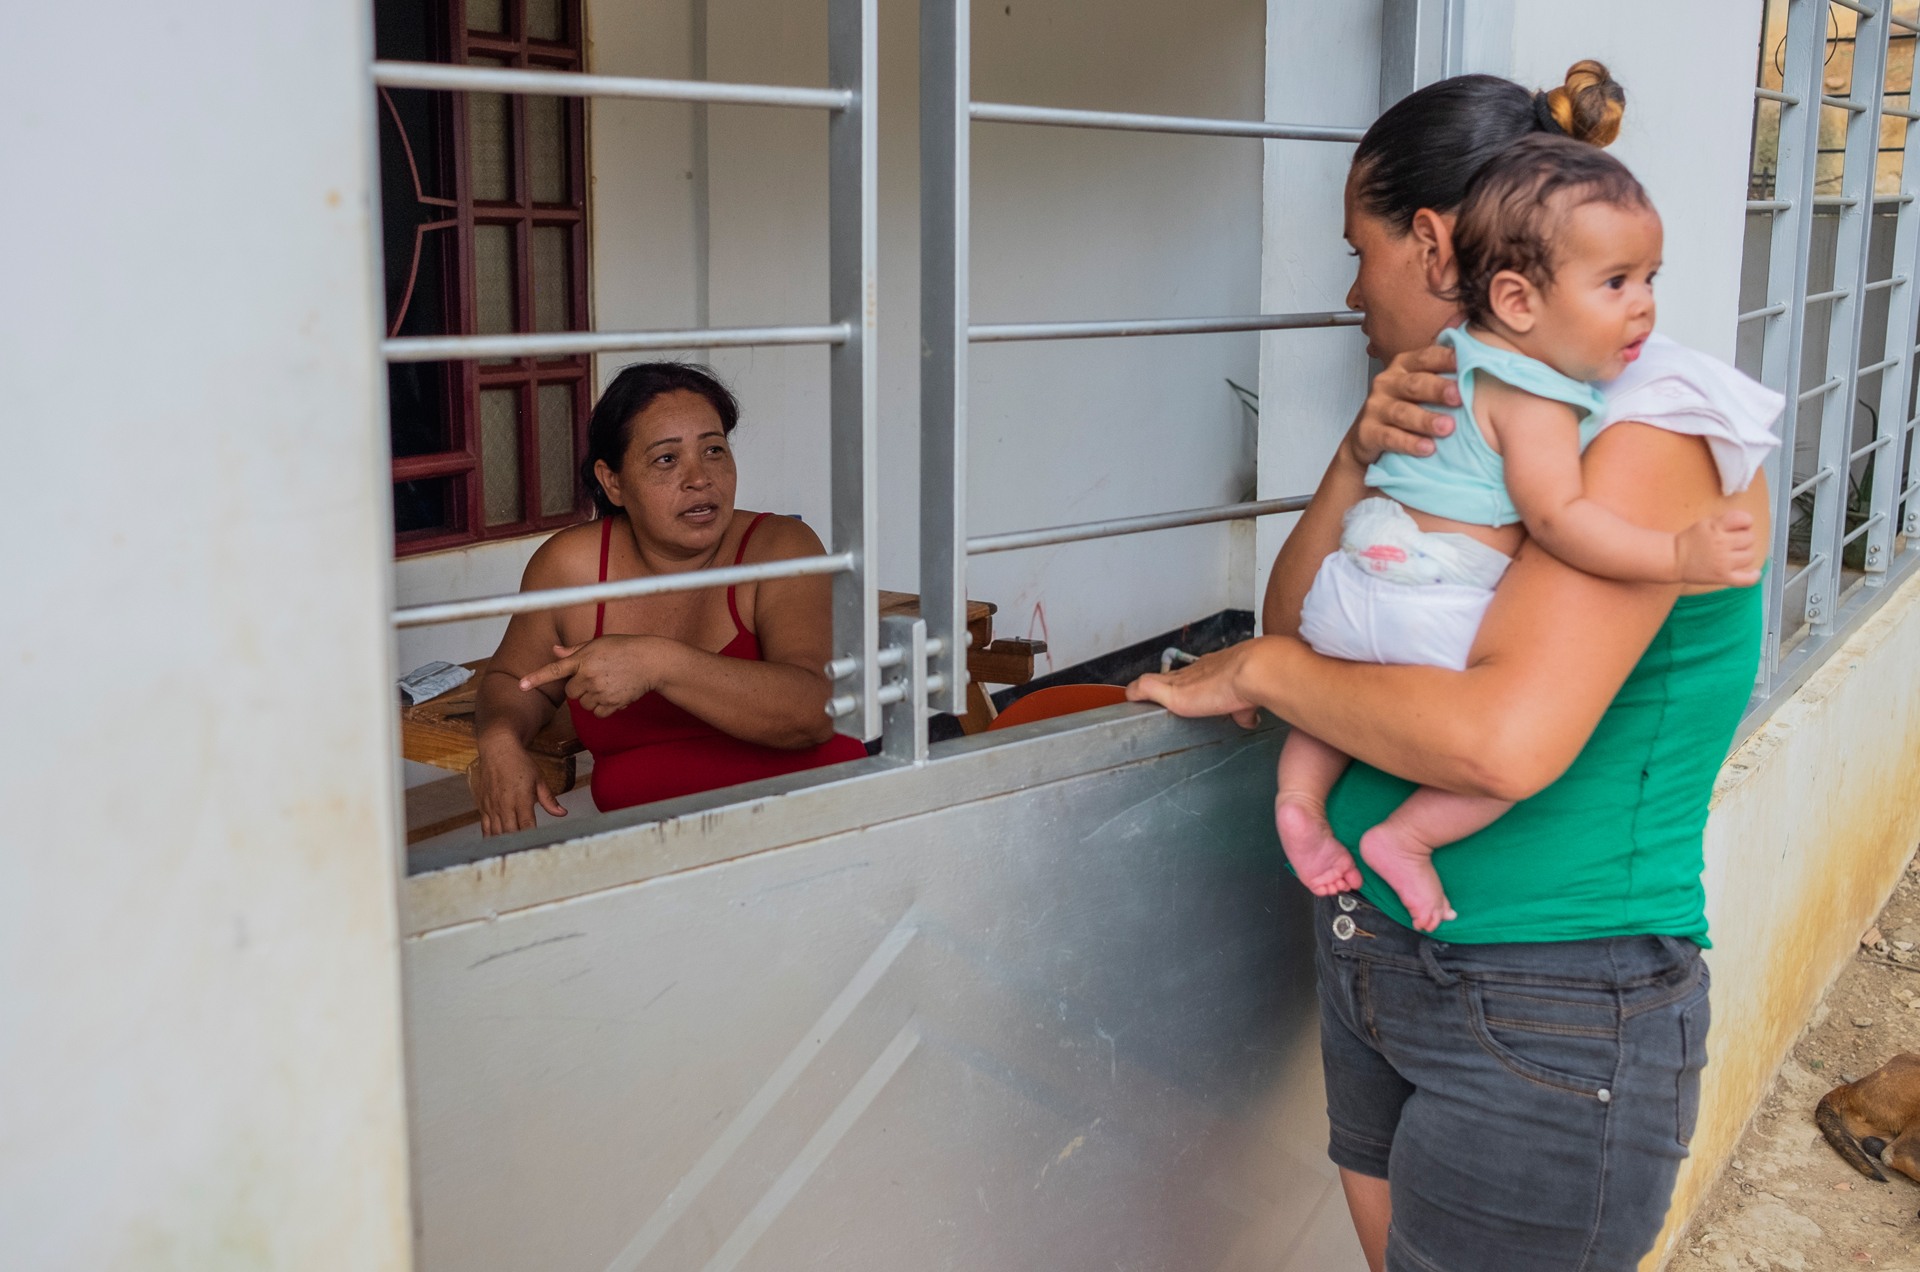 Marnellys Muentes (left) and her neighbour Élida Betancourt (right) speak through the railings of Muentes' house.